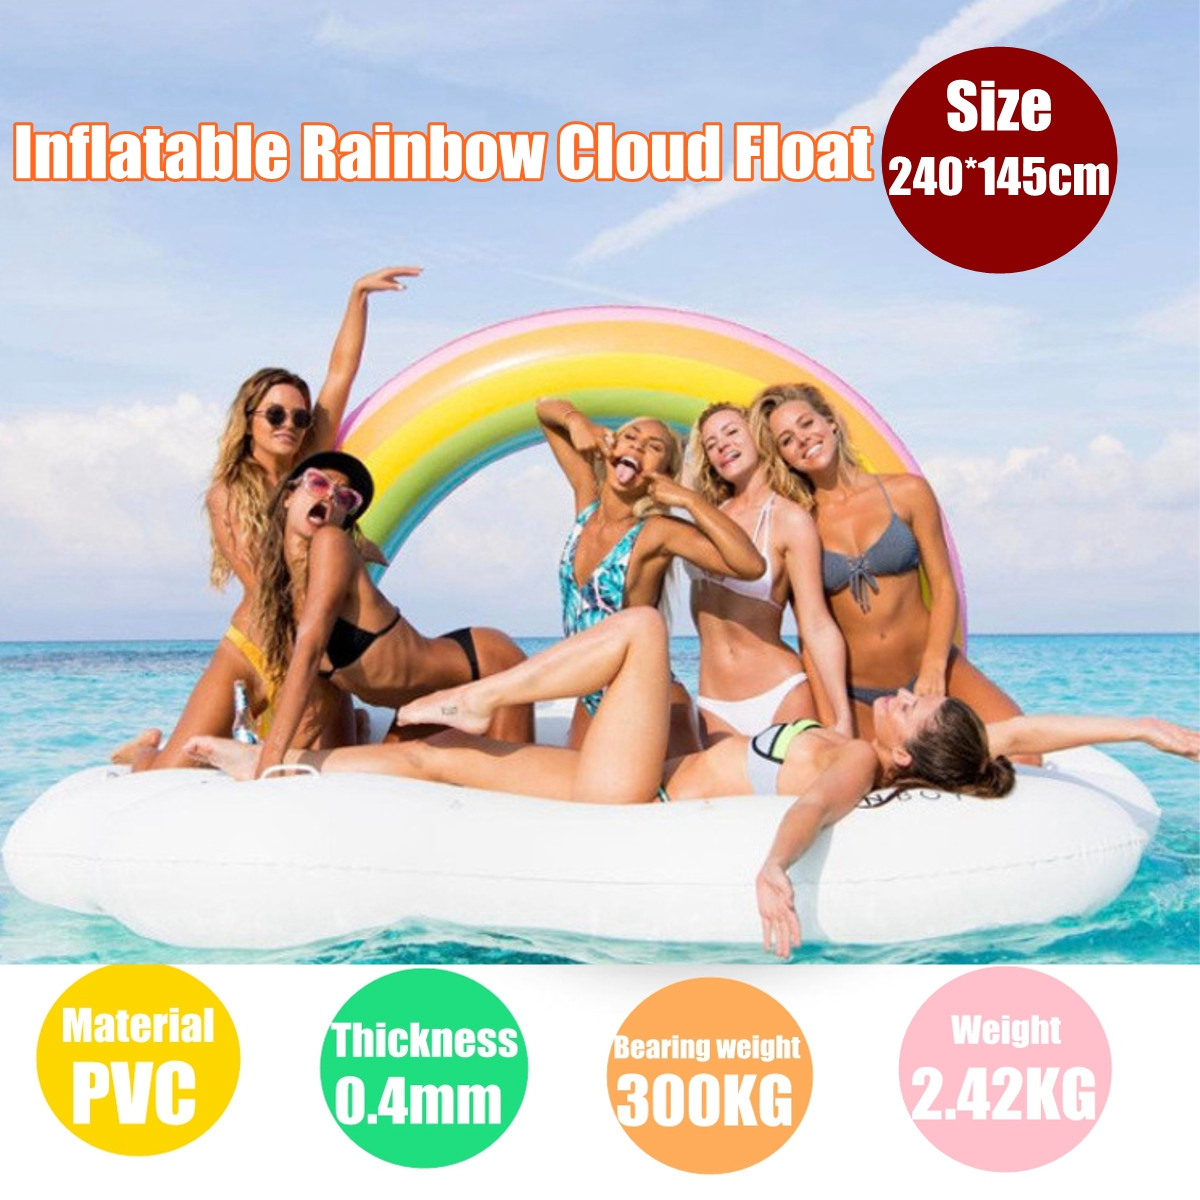 Giant Inflatable Rainbow Cloud Float Raft Swimming Pool Play PVC Toys 240*145cm For Adult Tube Raft Kid Ring Water Toy ...